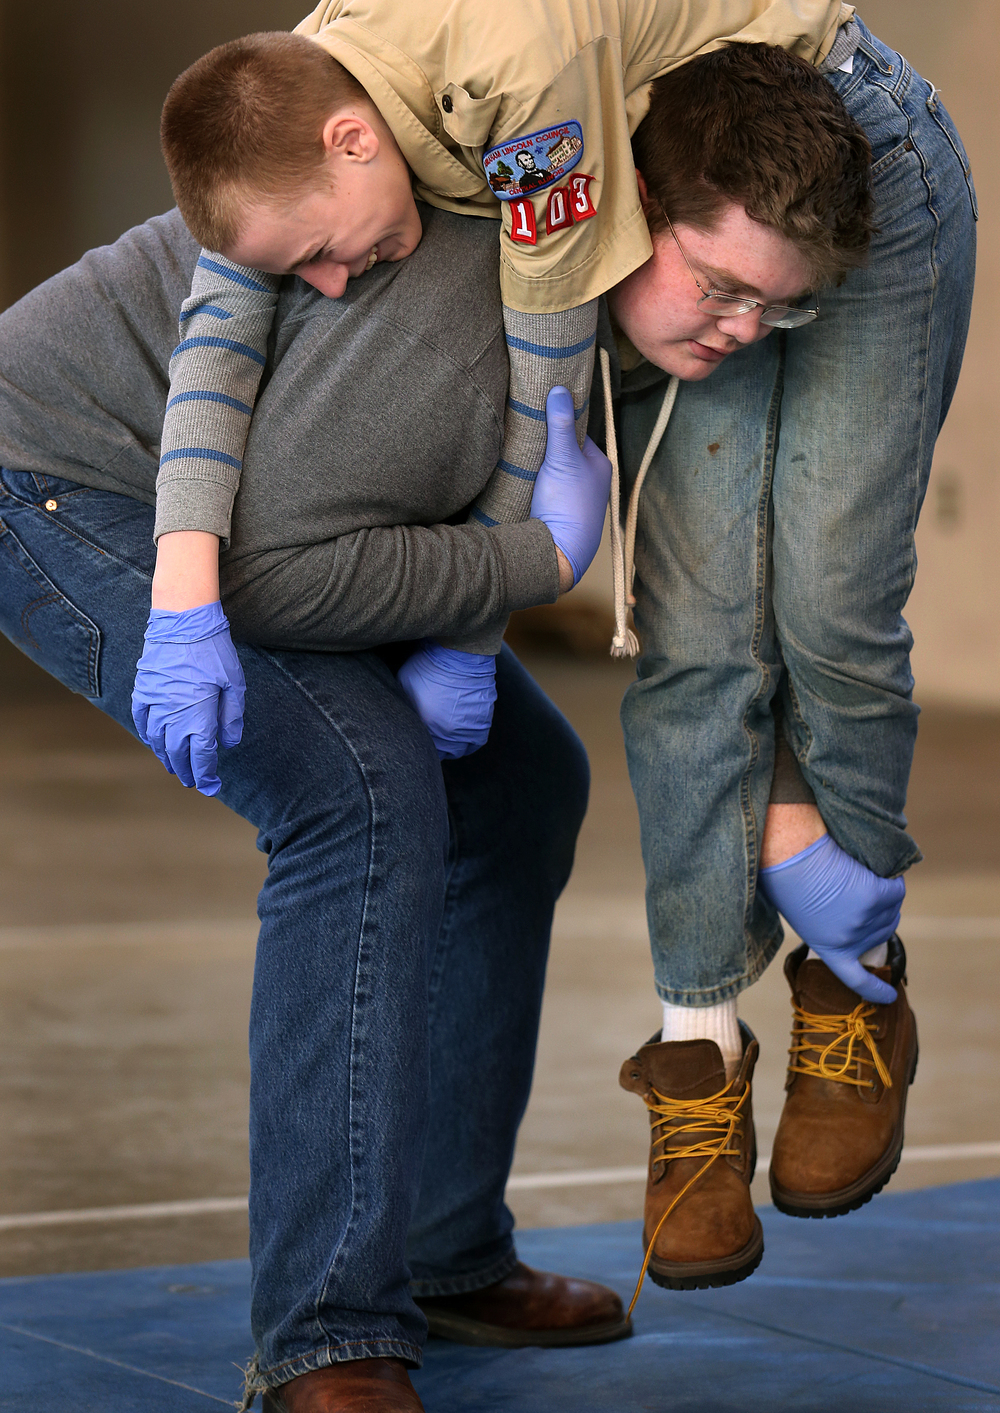 Boy Scout Troop #103 of Jacksonville member John Paul Killam performs a Fireman's Carry on fellow troop member Gavin Gass in a training scenario in which different victim carrying techniques were practiced. David Spencer/The State Journal Register